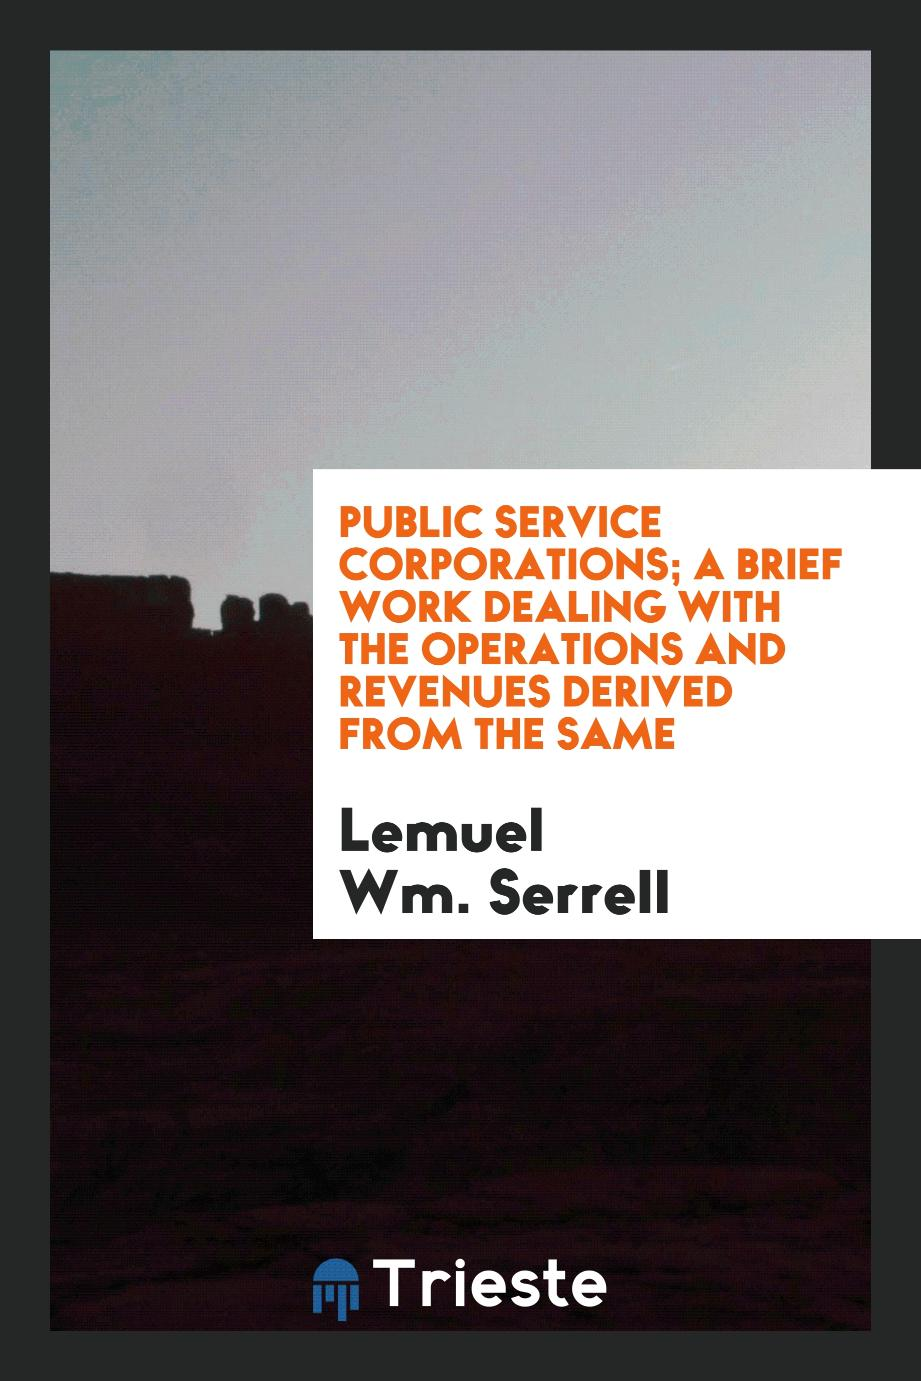 Public service corporations; a brief work dealing with the operations and revenues derived from the same